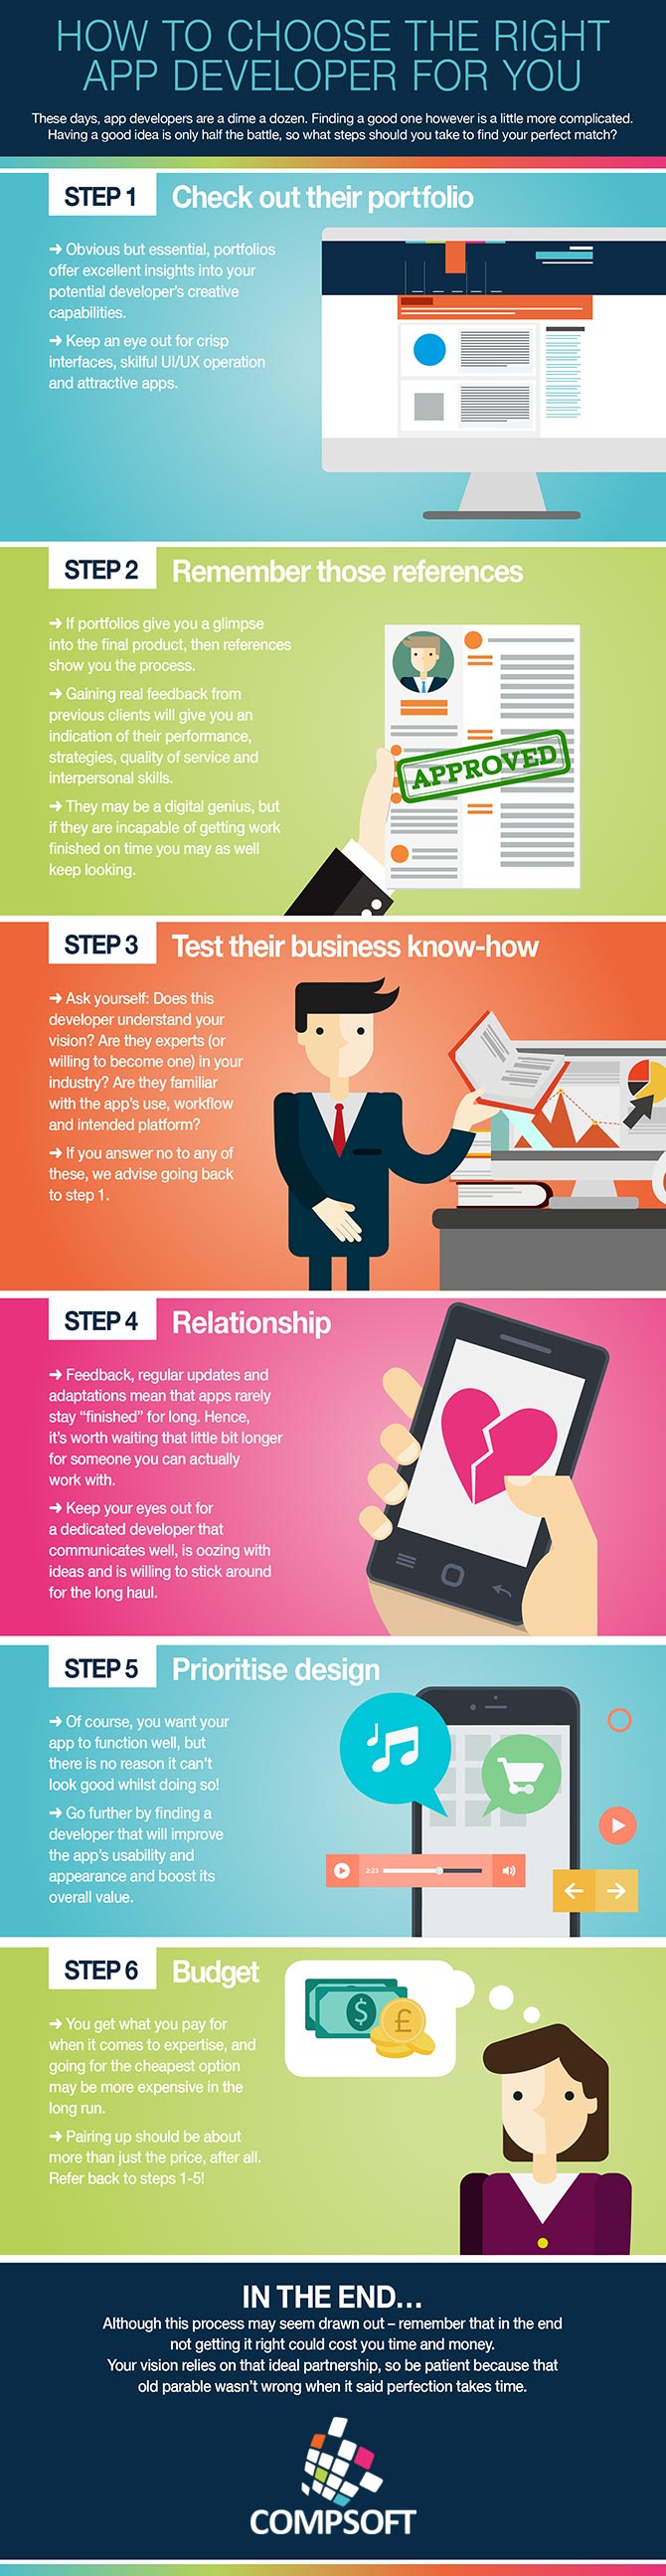 how to choose the right app developer infographic